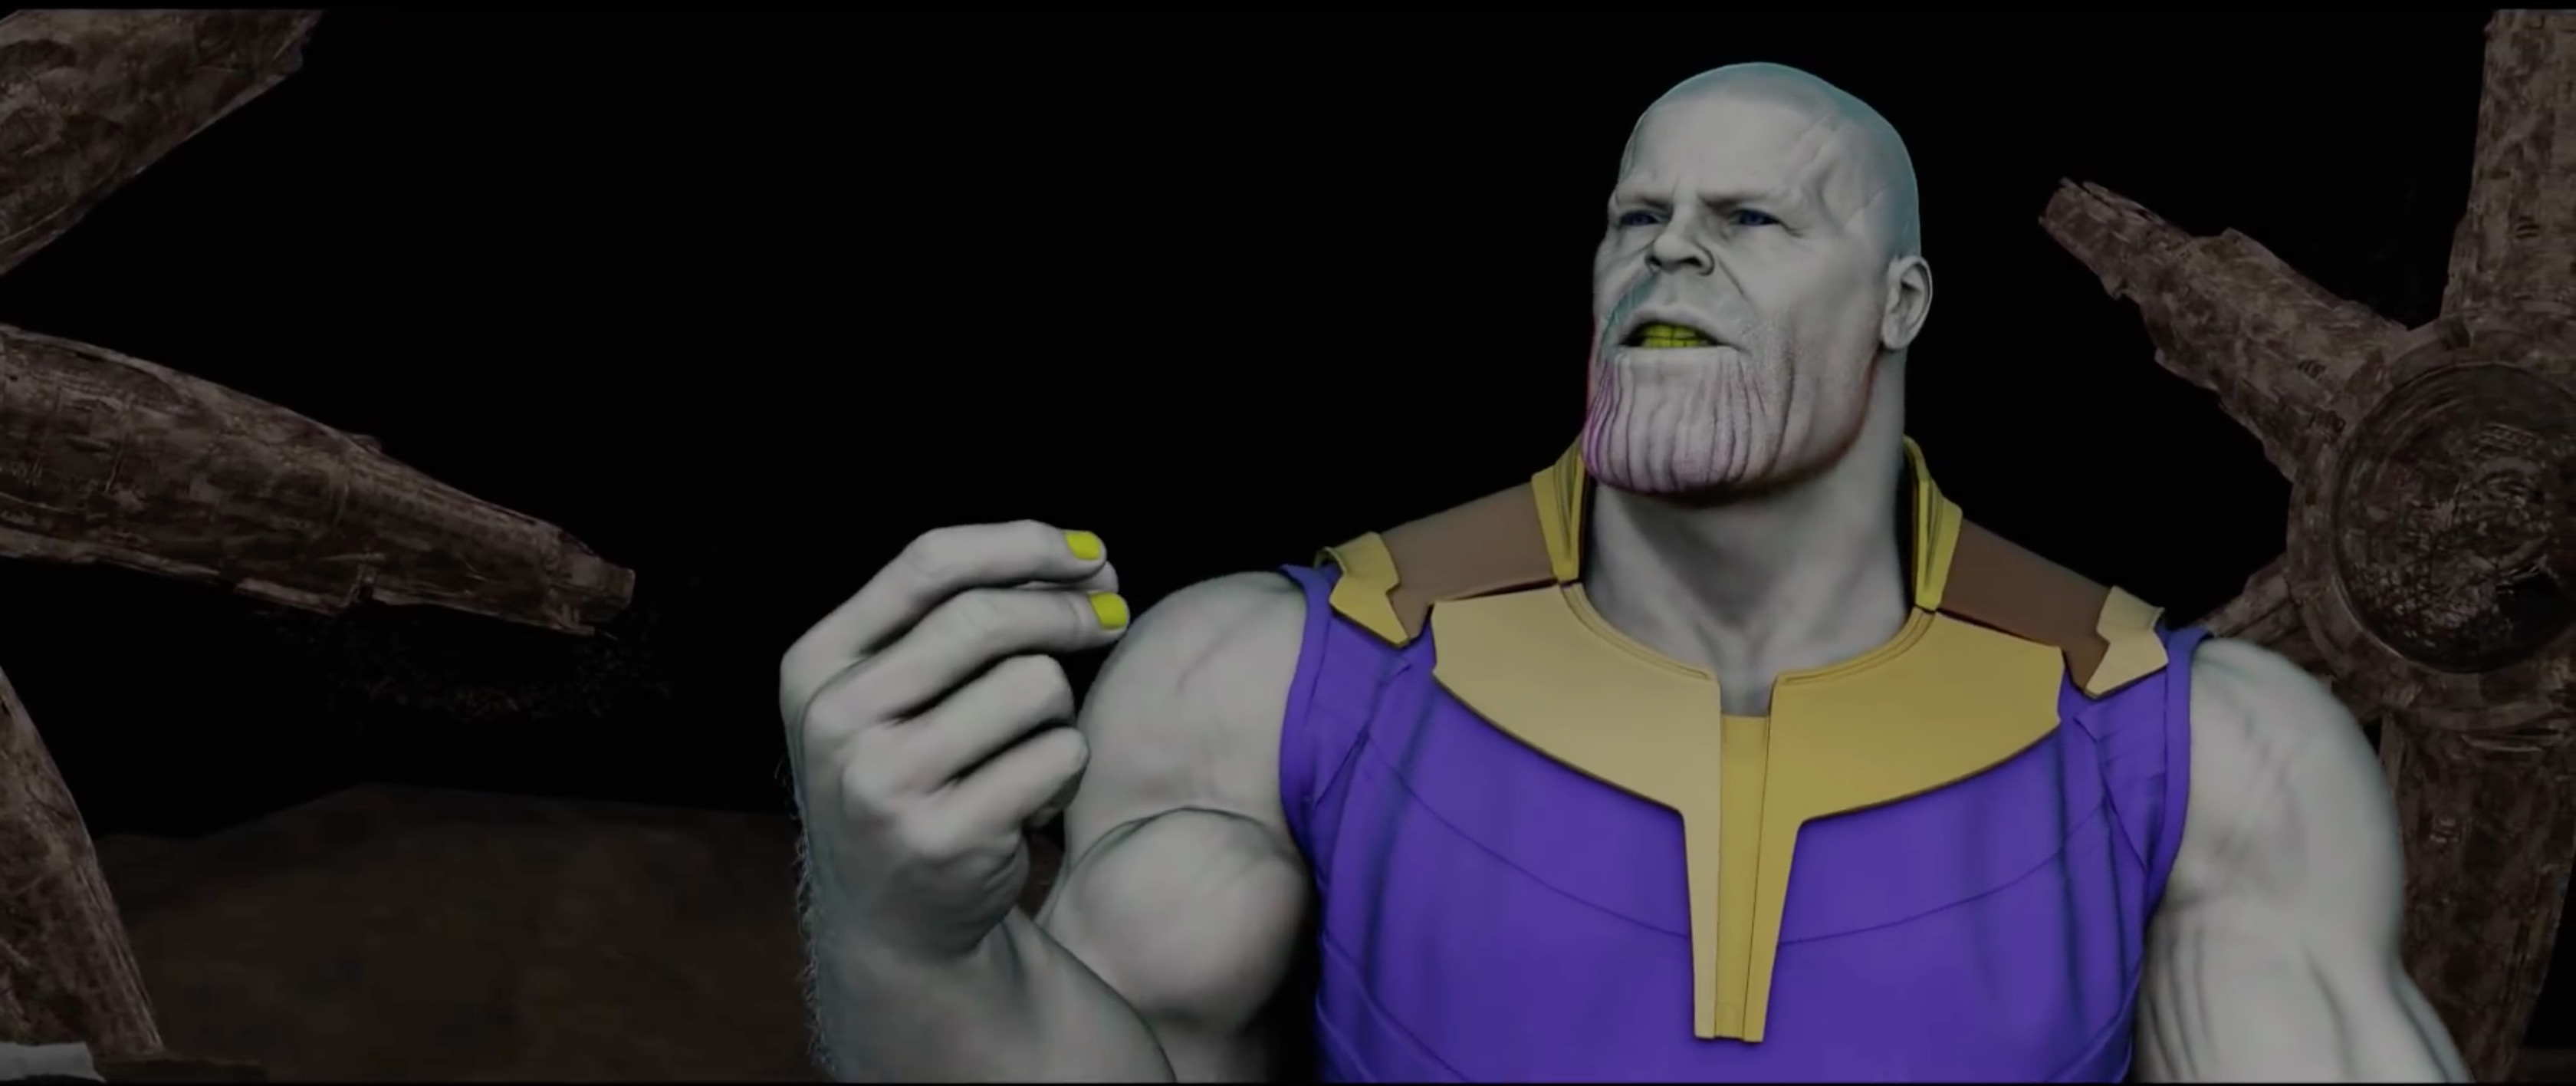 Avengers: Infinity War VFX Breakdown by Weta